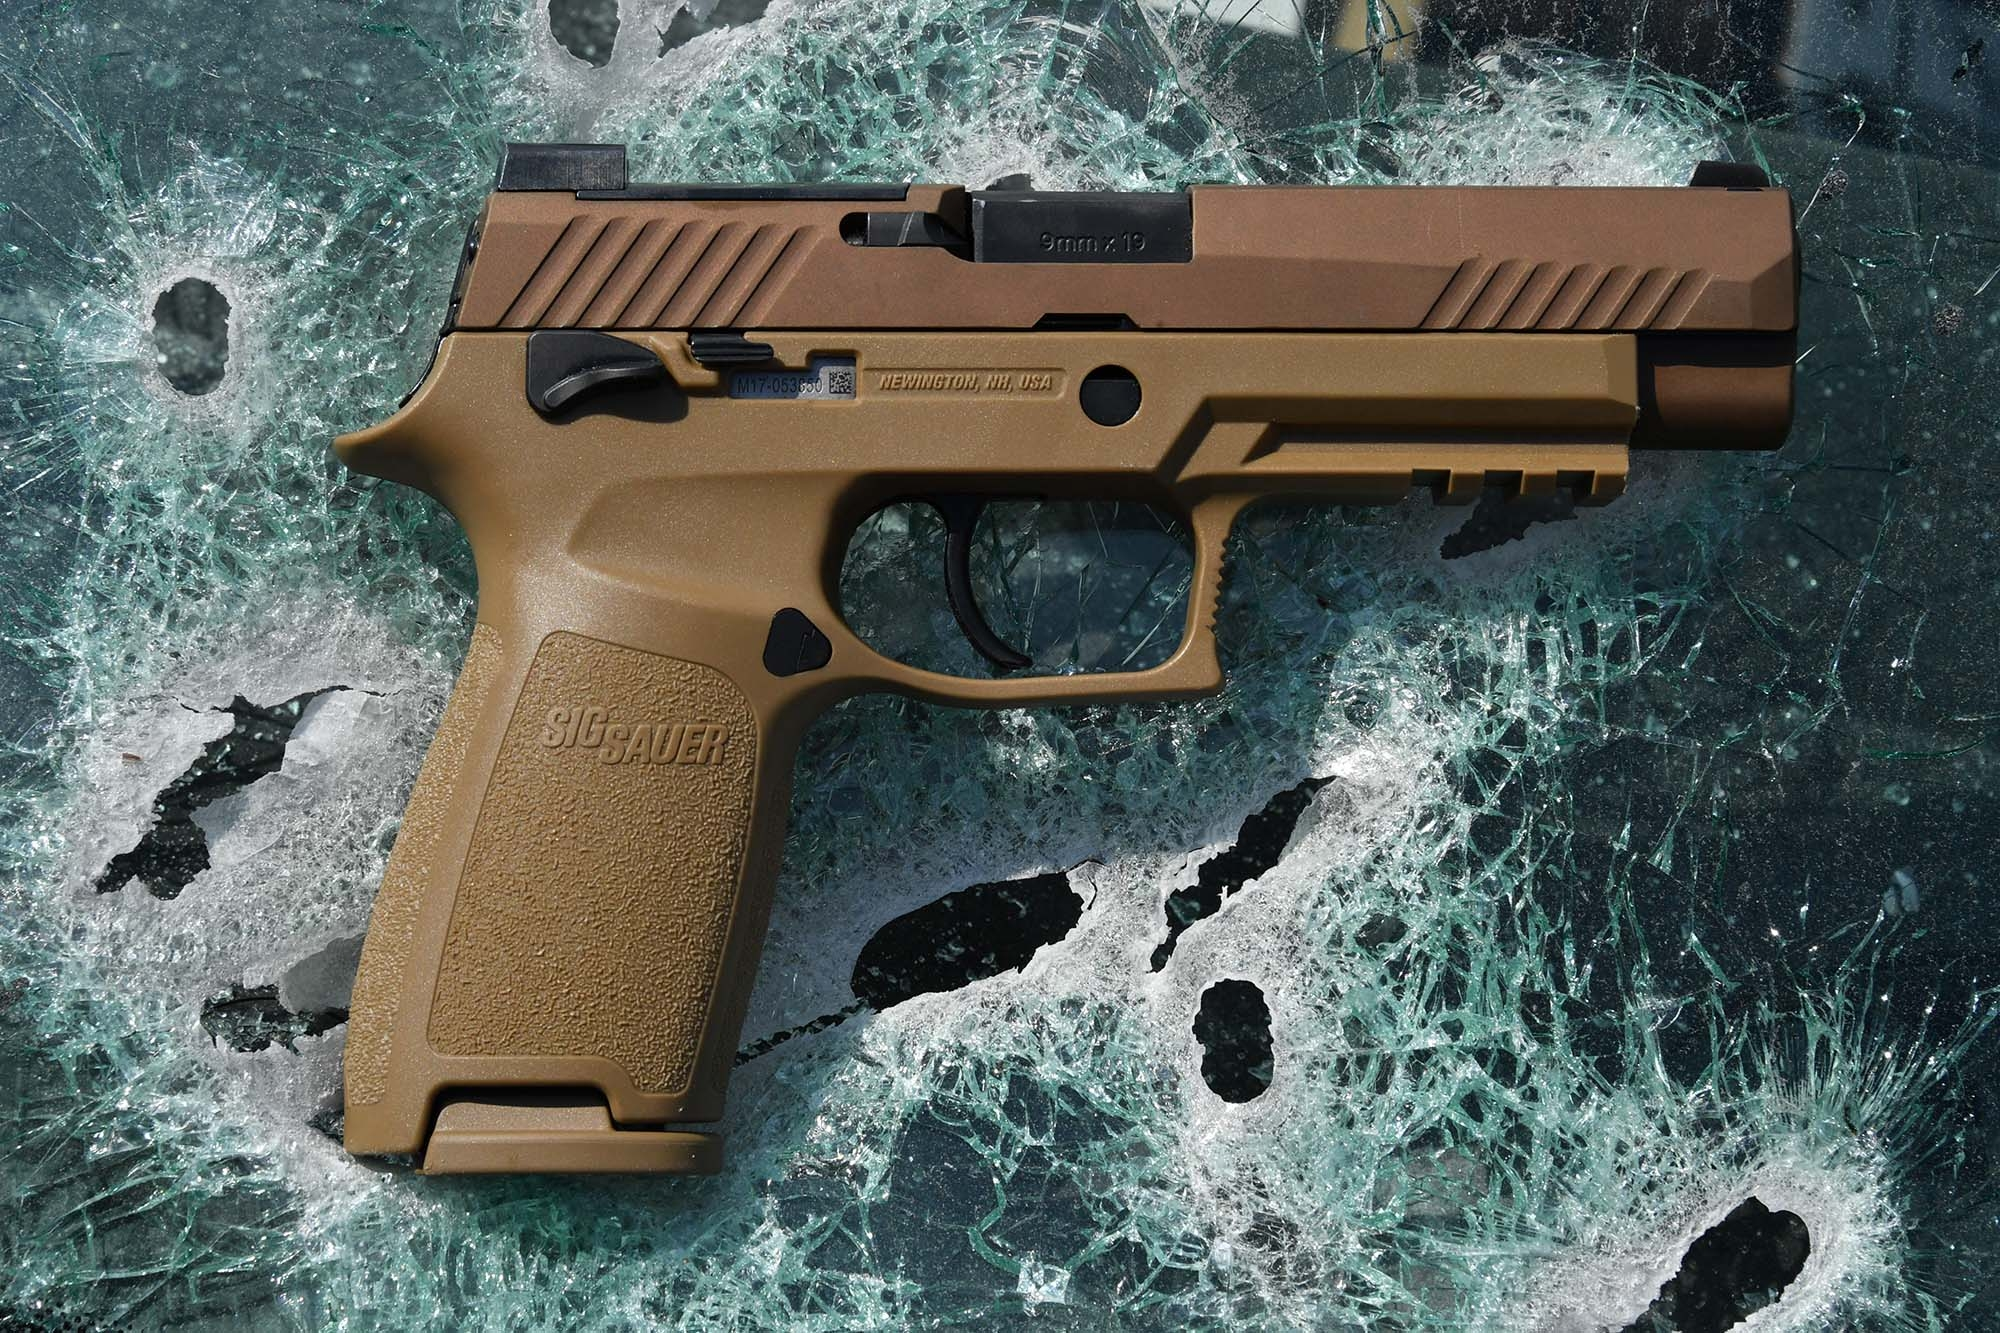 sig-sauer: First Look at the civilian versions: SIG Sauer P320-M17 including availability and prices for US and Europe